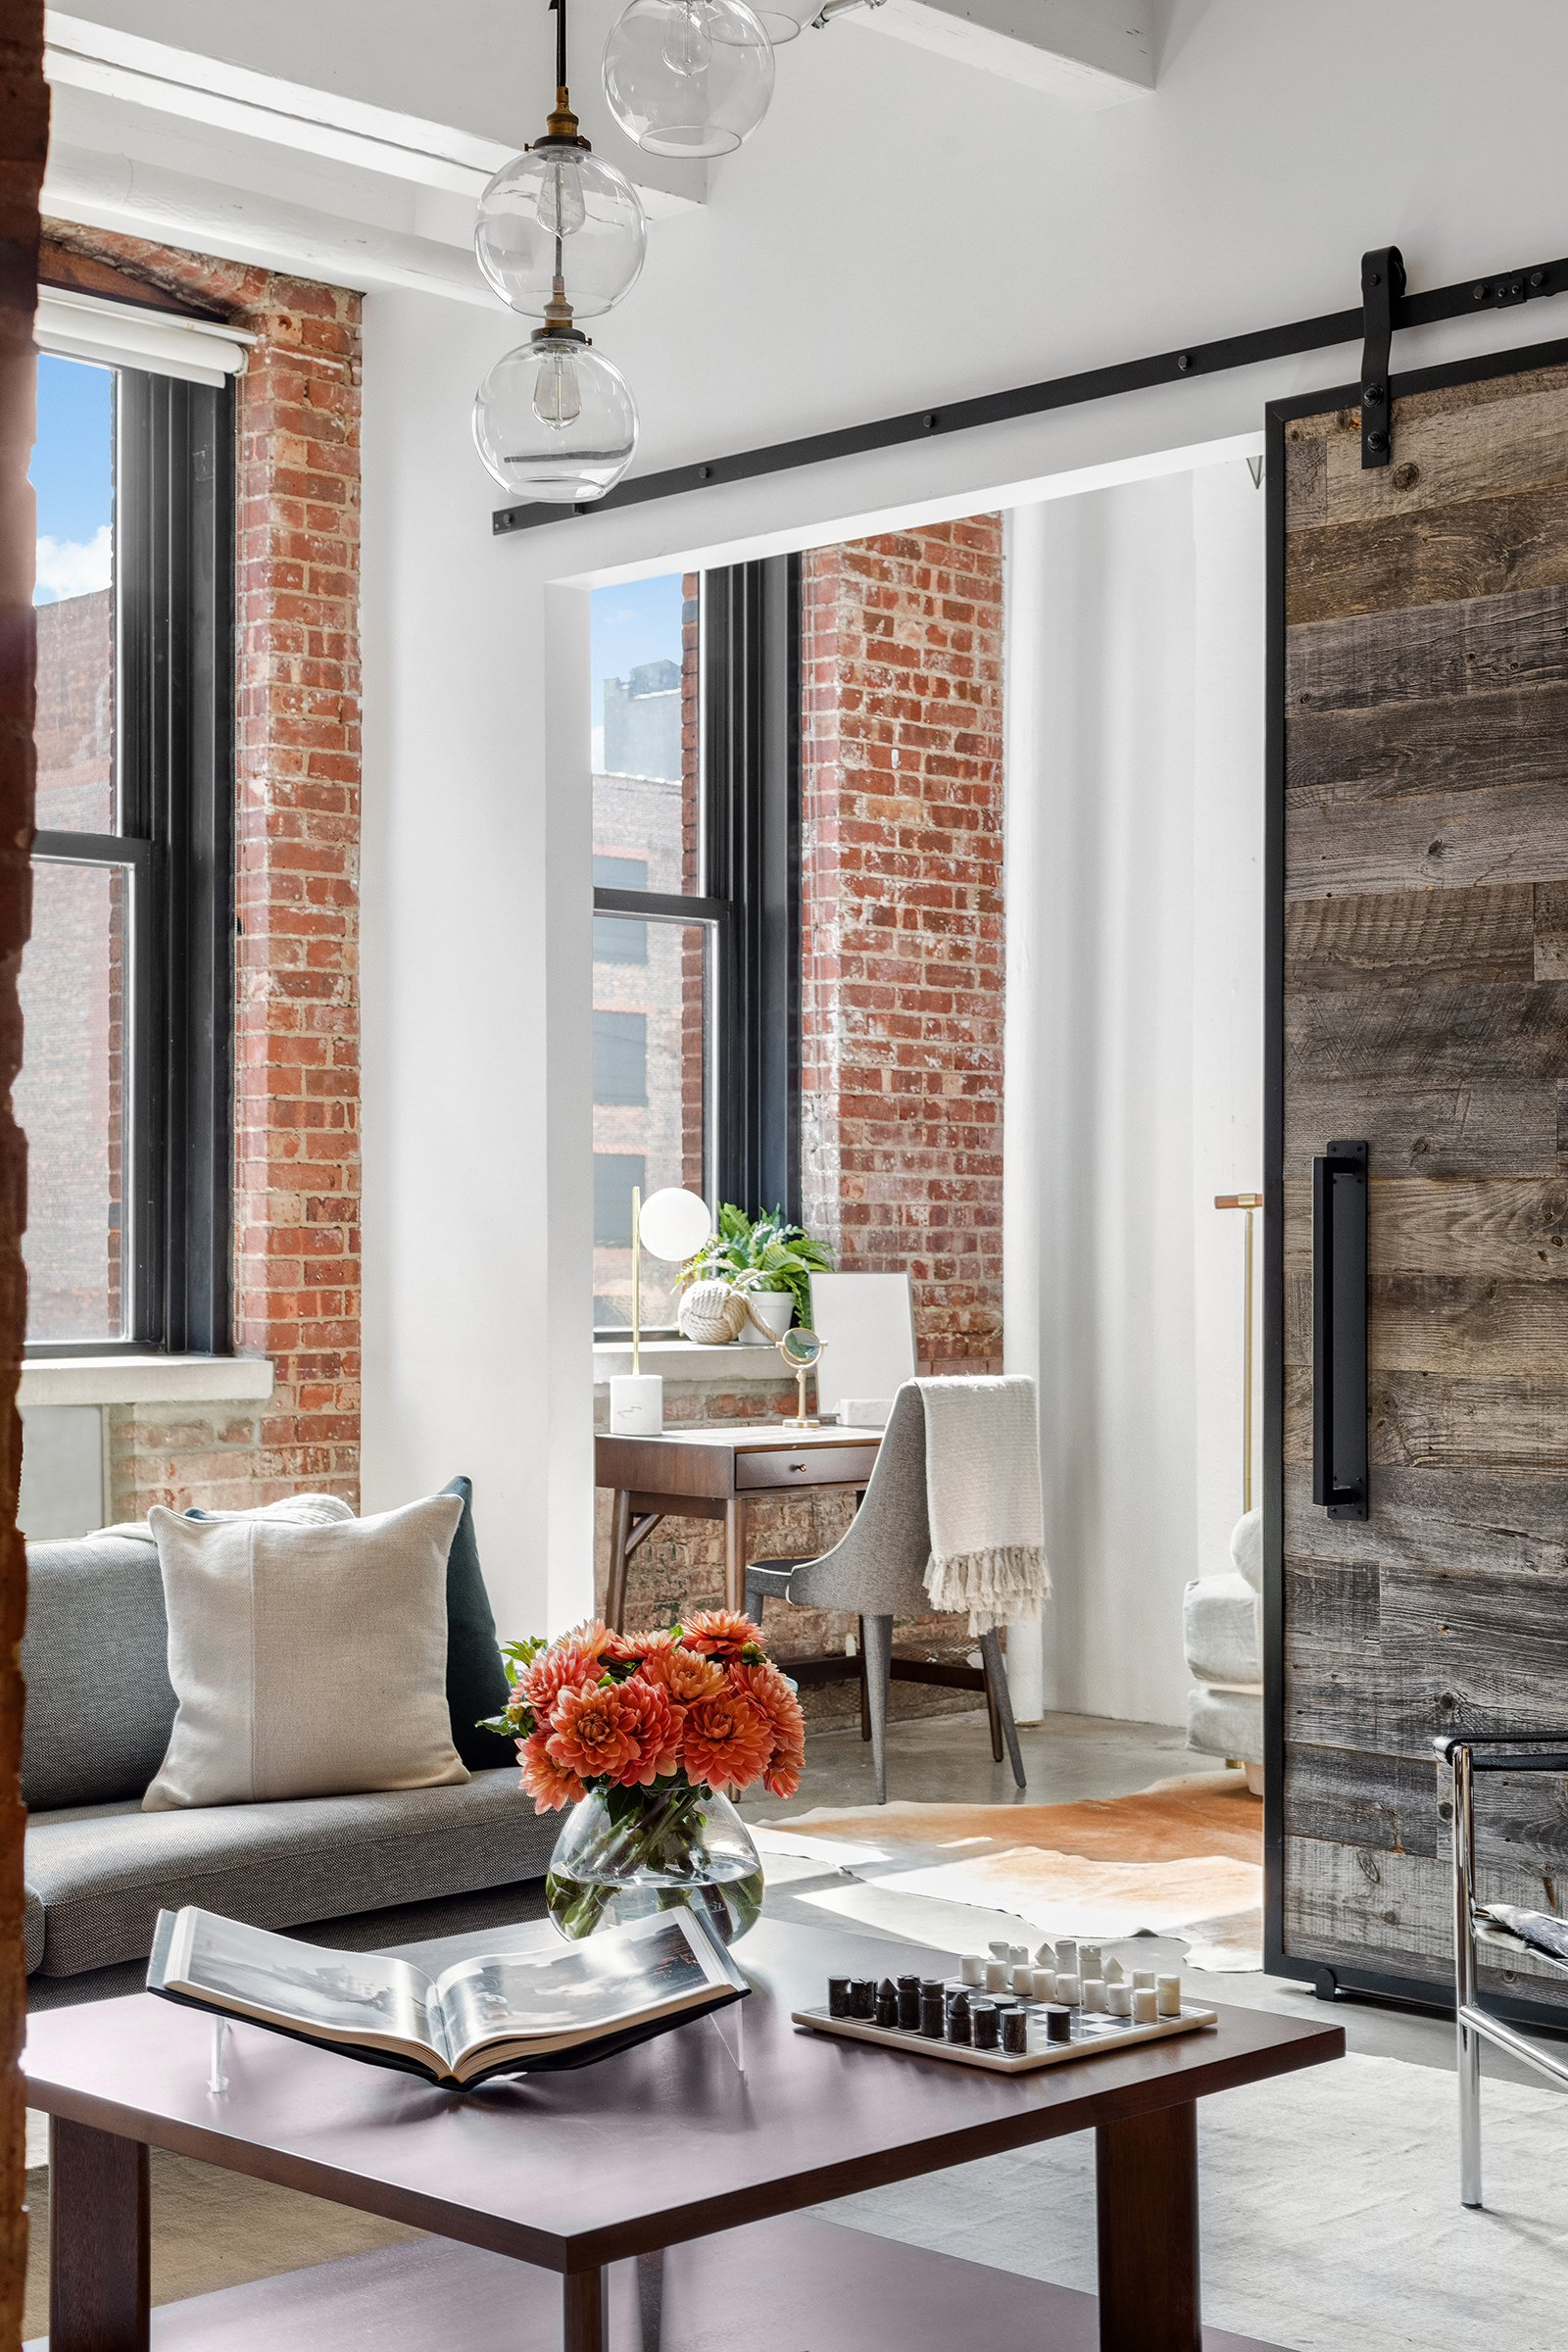 Cnbc Anchor Sara Eisen Lists Renovated Polished Rustic